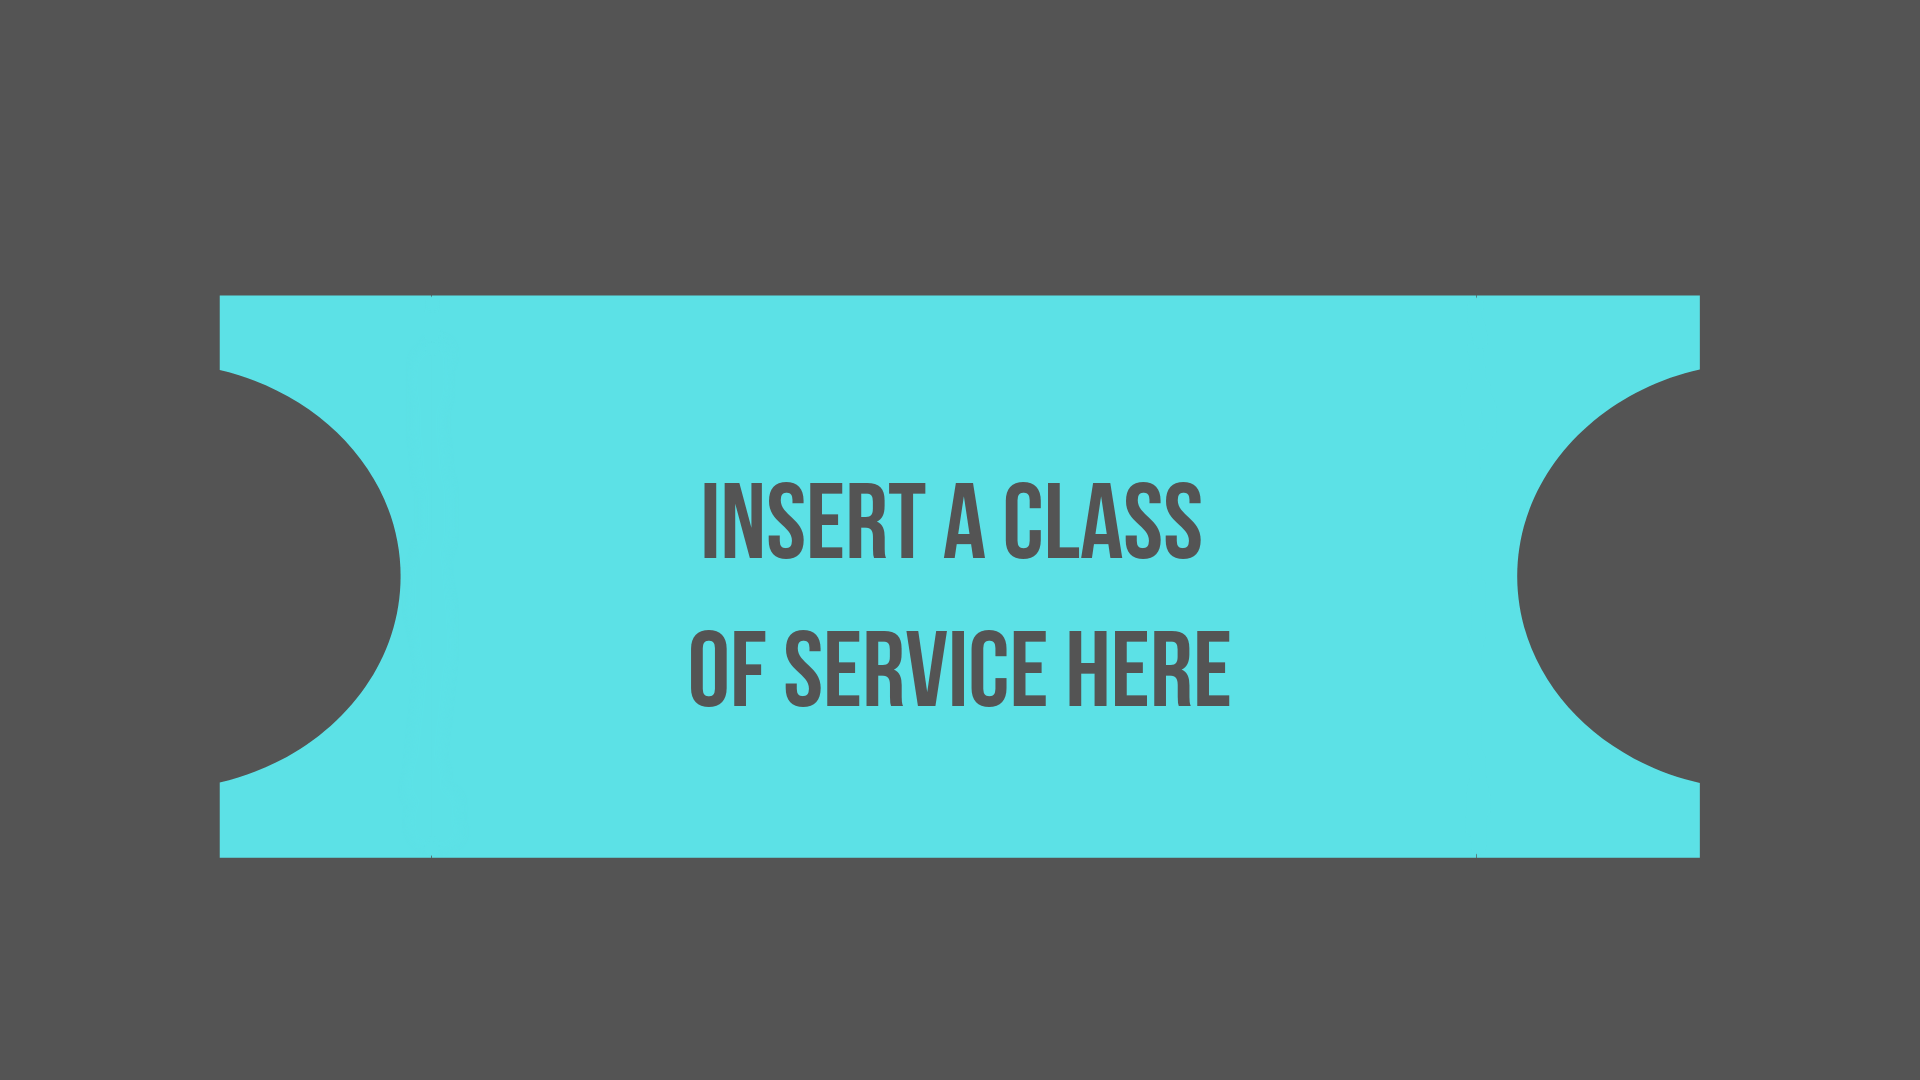 You can define your very own classes of service in Kanban